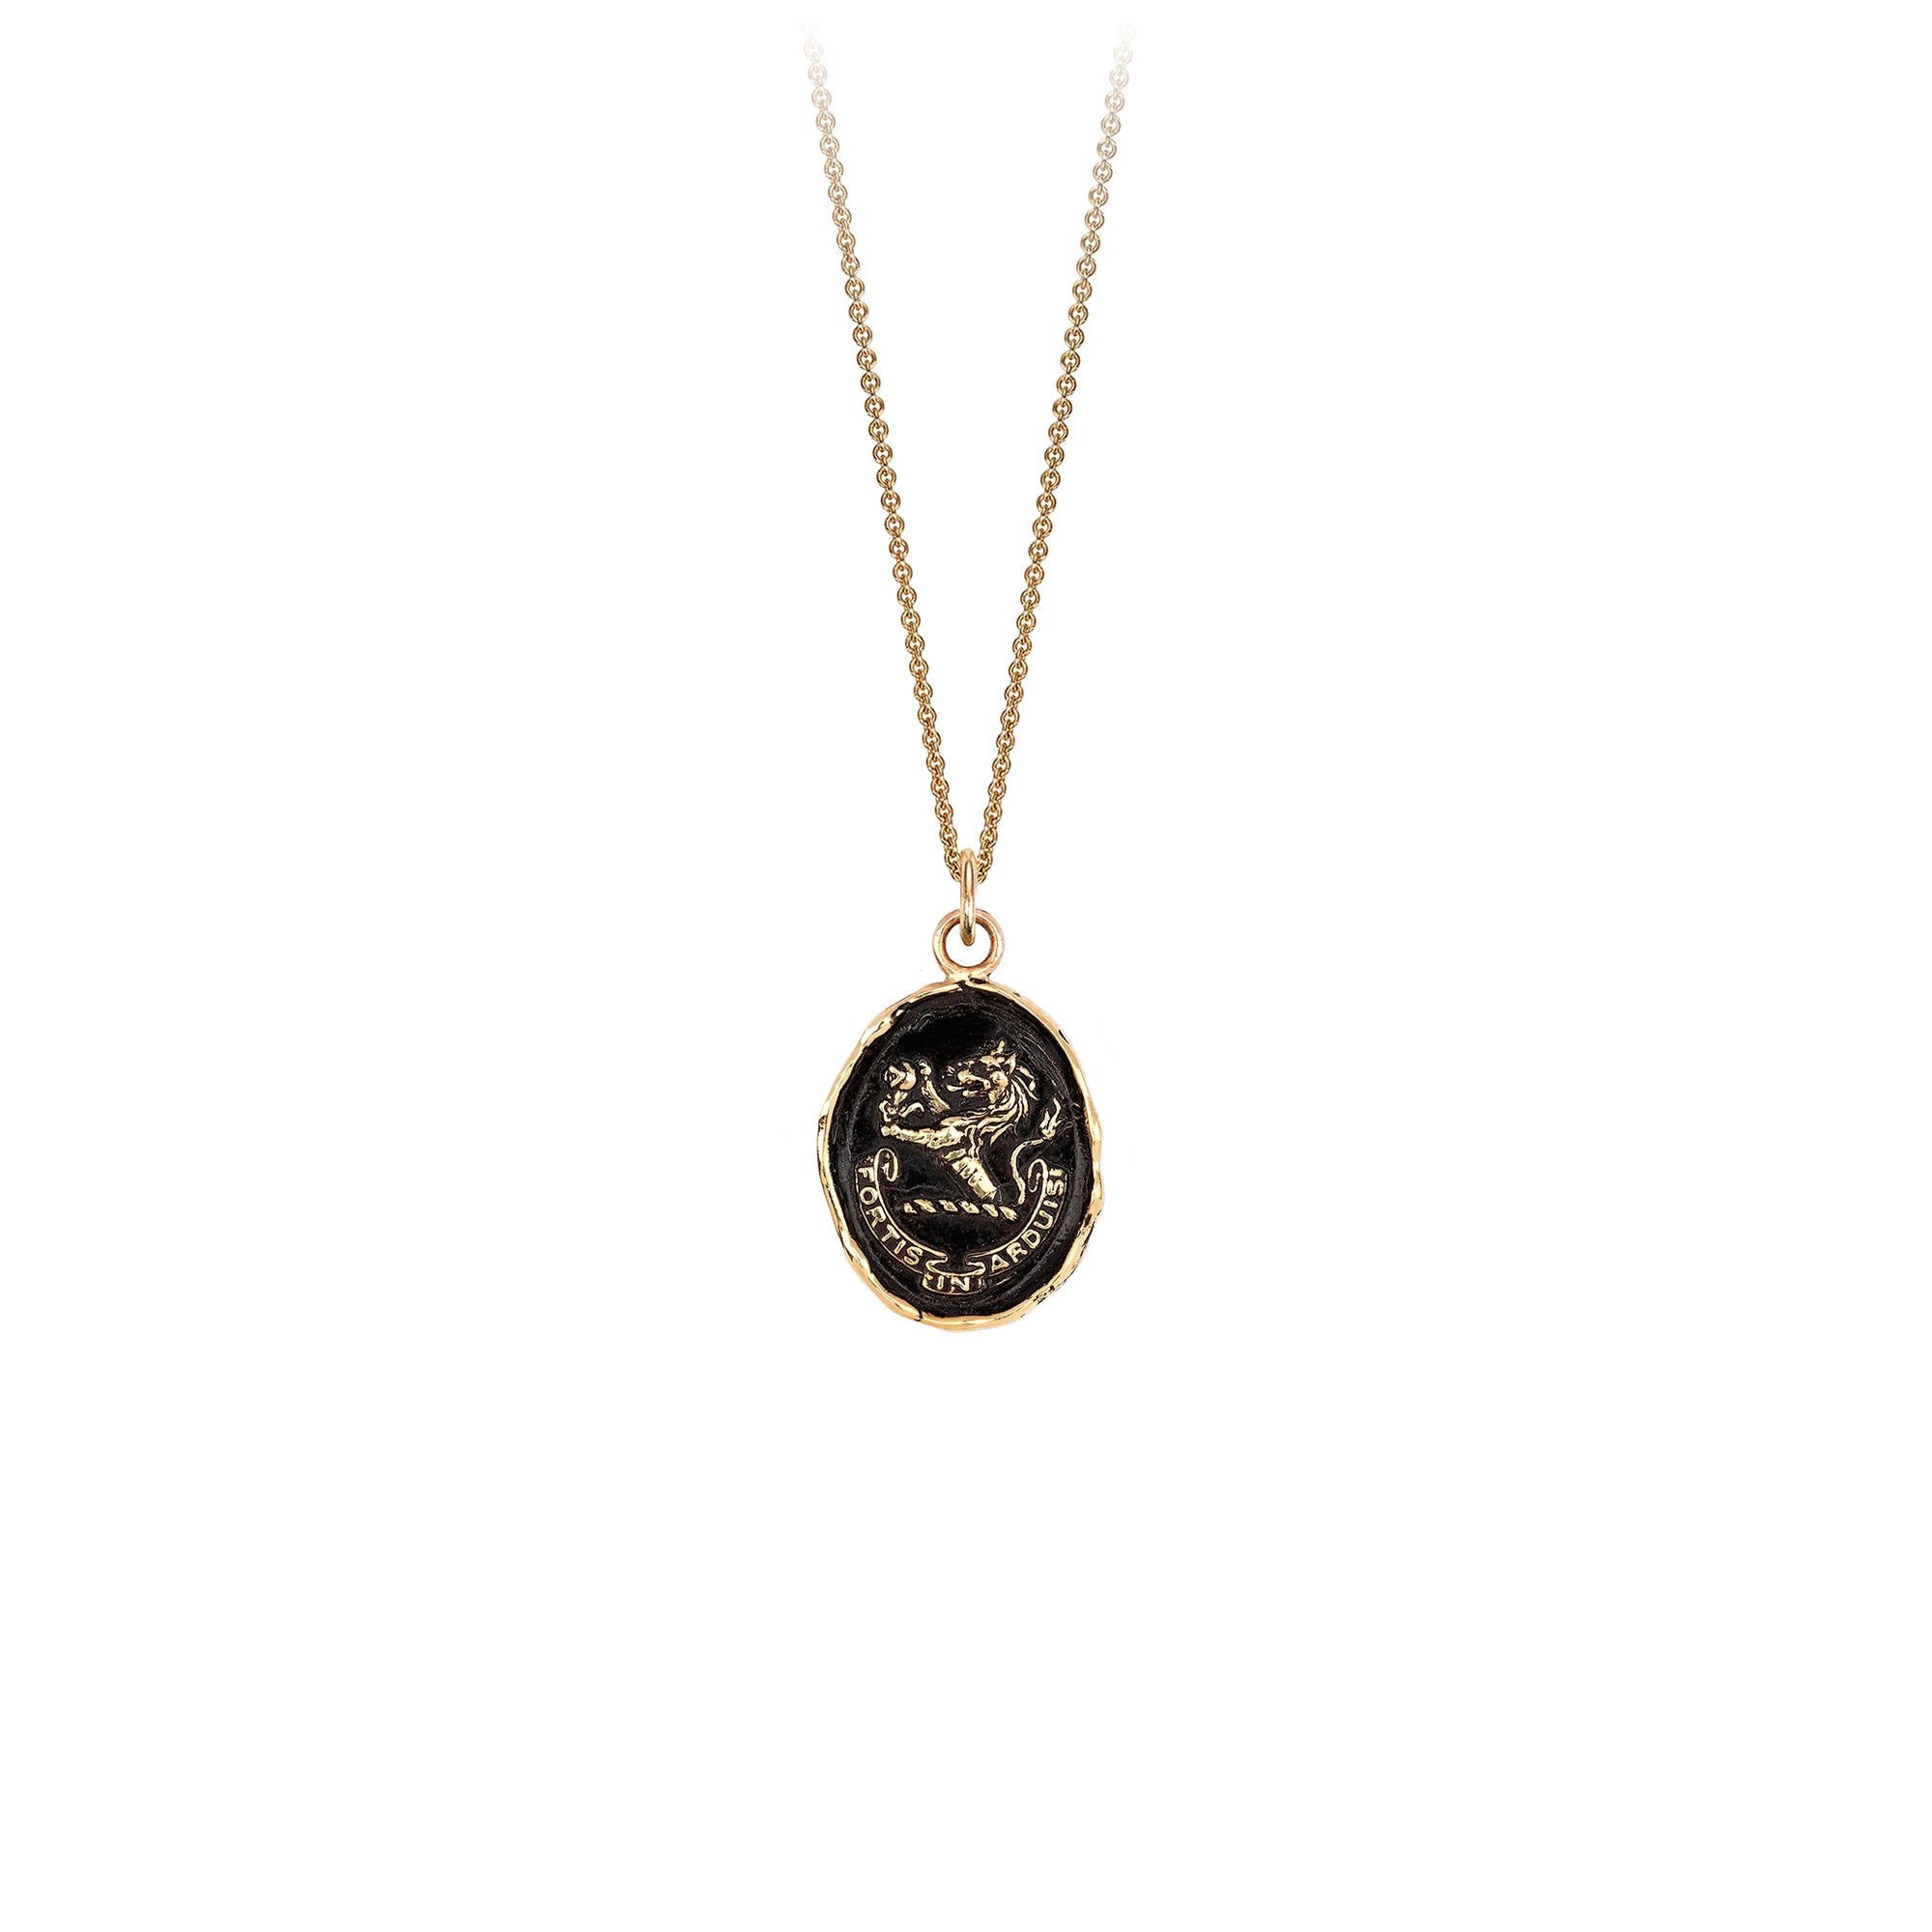 Pyrrha Brave in Difficulties 14K Gold Talisman Necklace